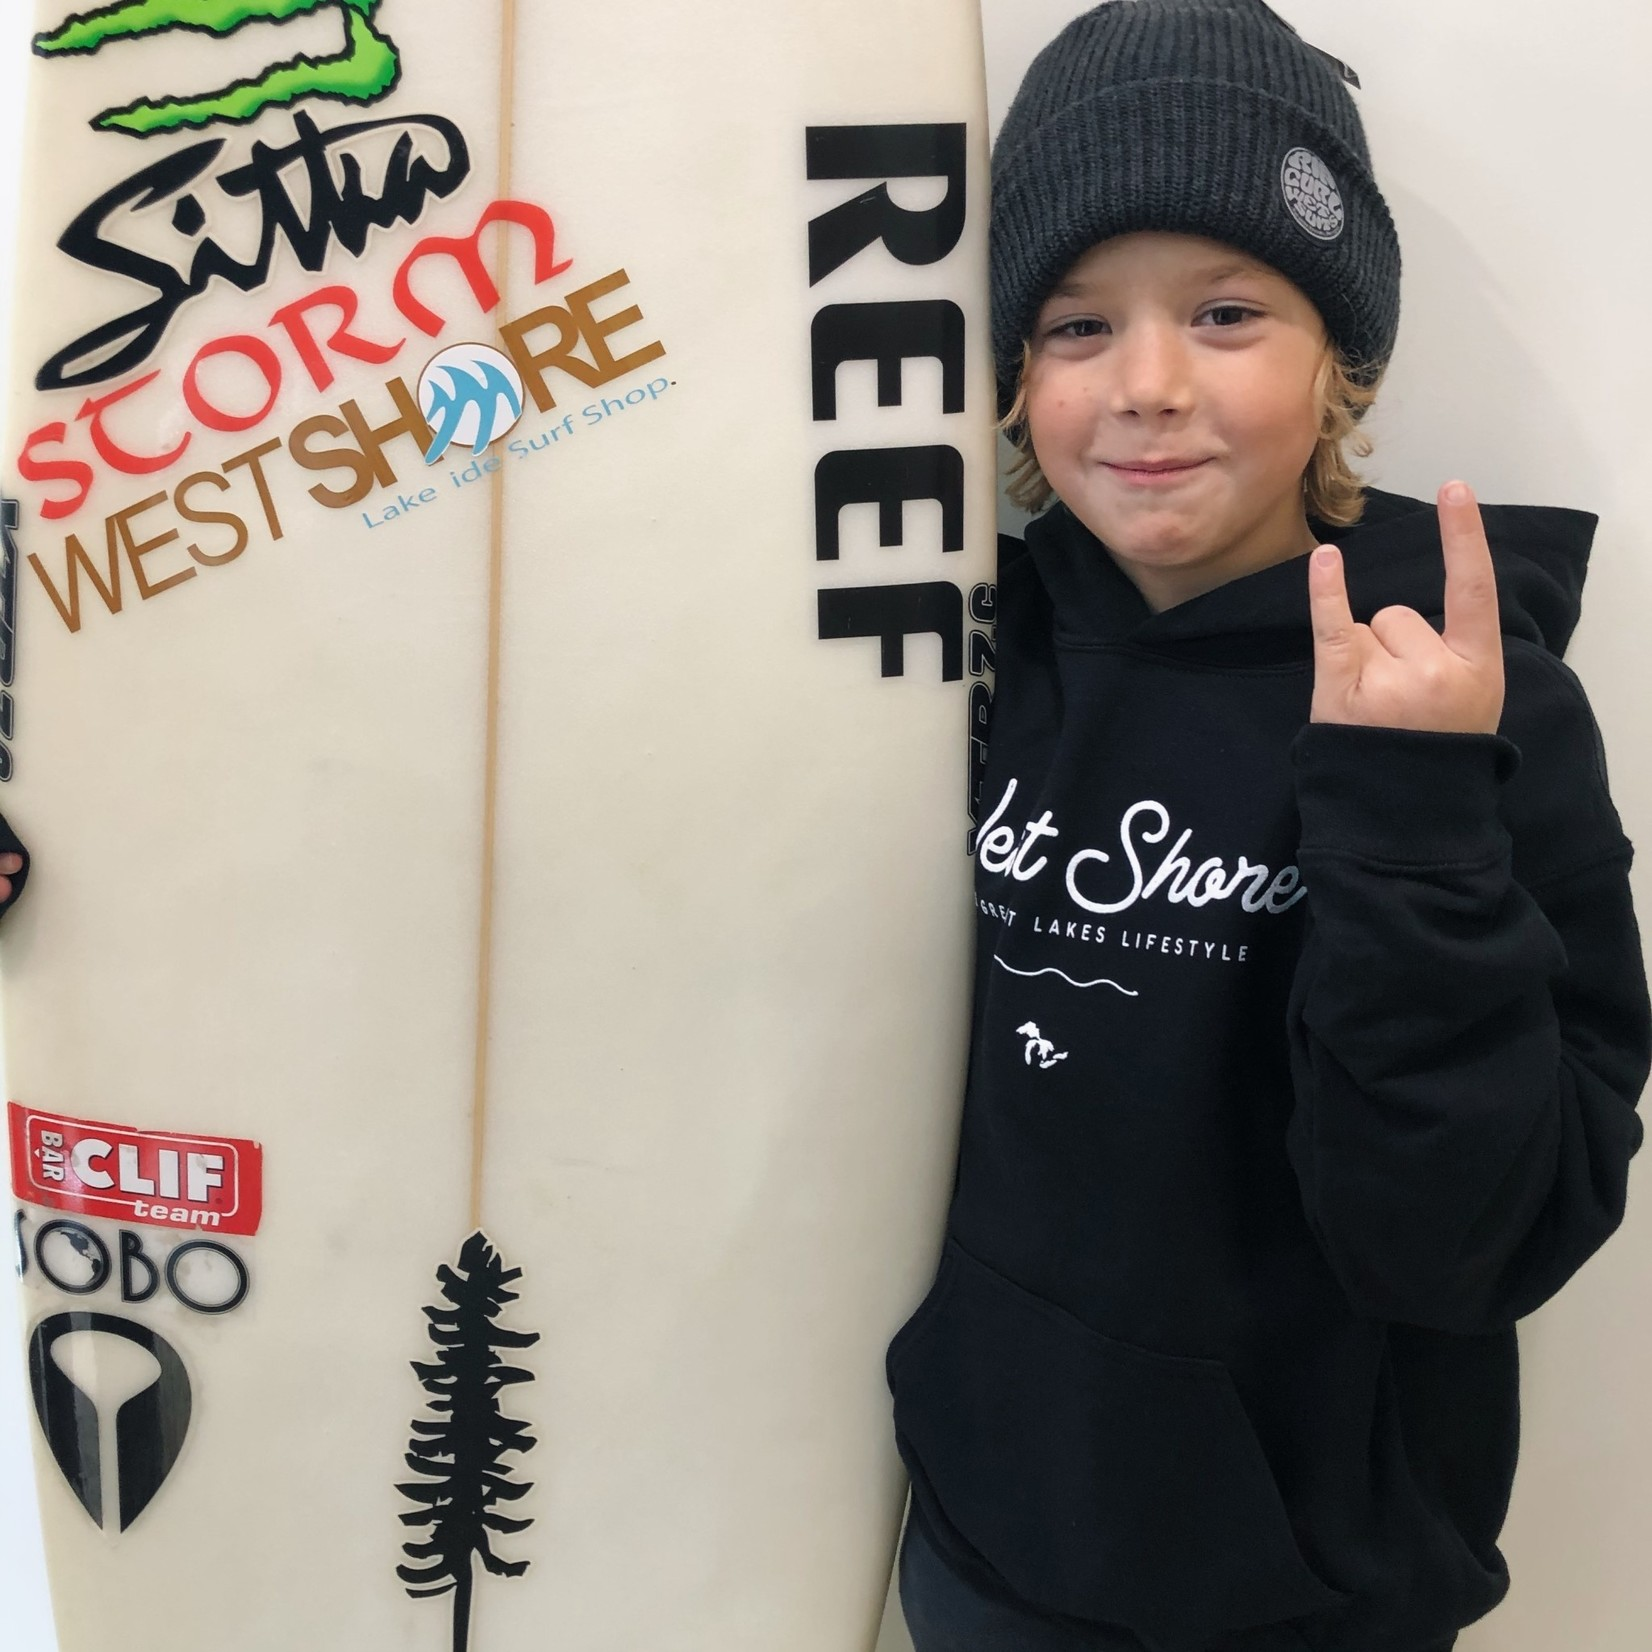 WEST SHORE WS YOUTH HOODY - CLASSIC SCRIPT